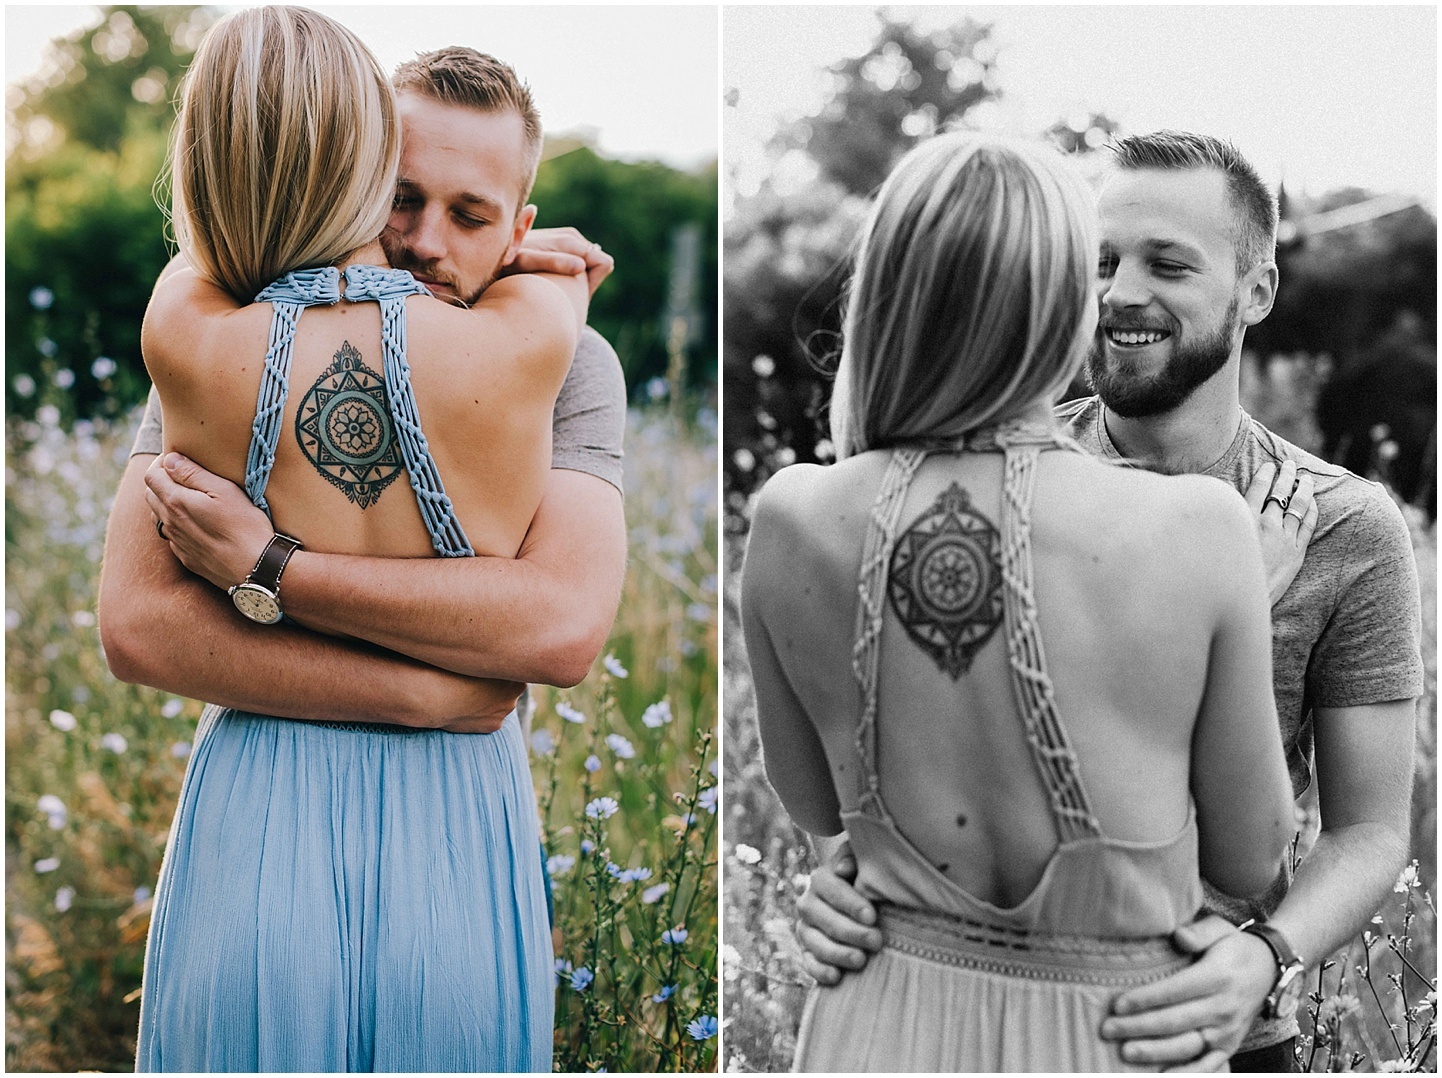 Betsy's awesome tattoos have me super jealous and wanting some more tattoos stat!